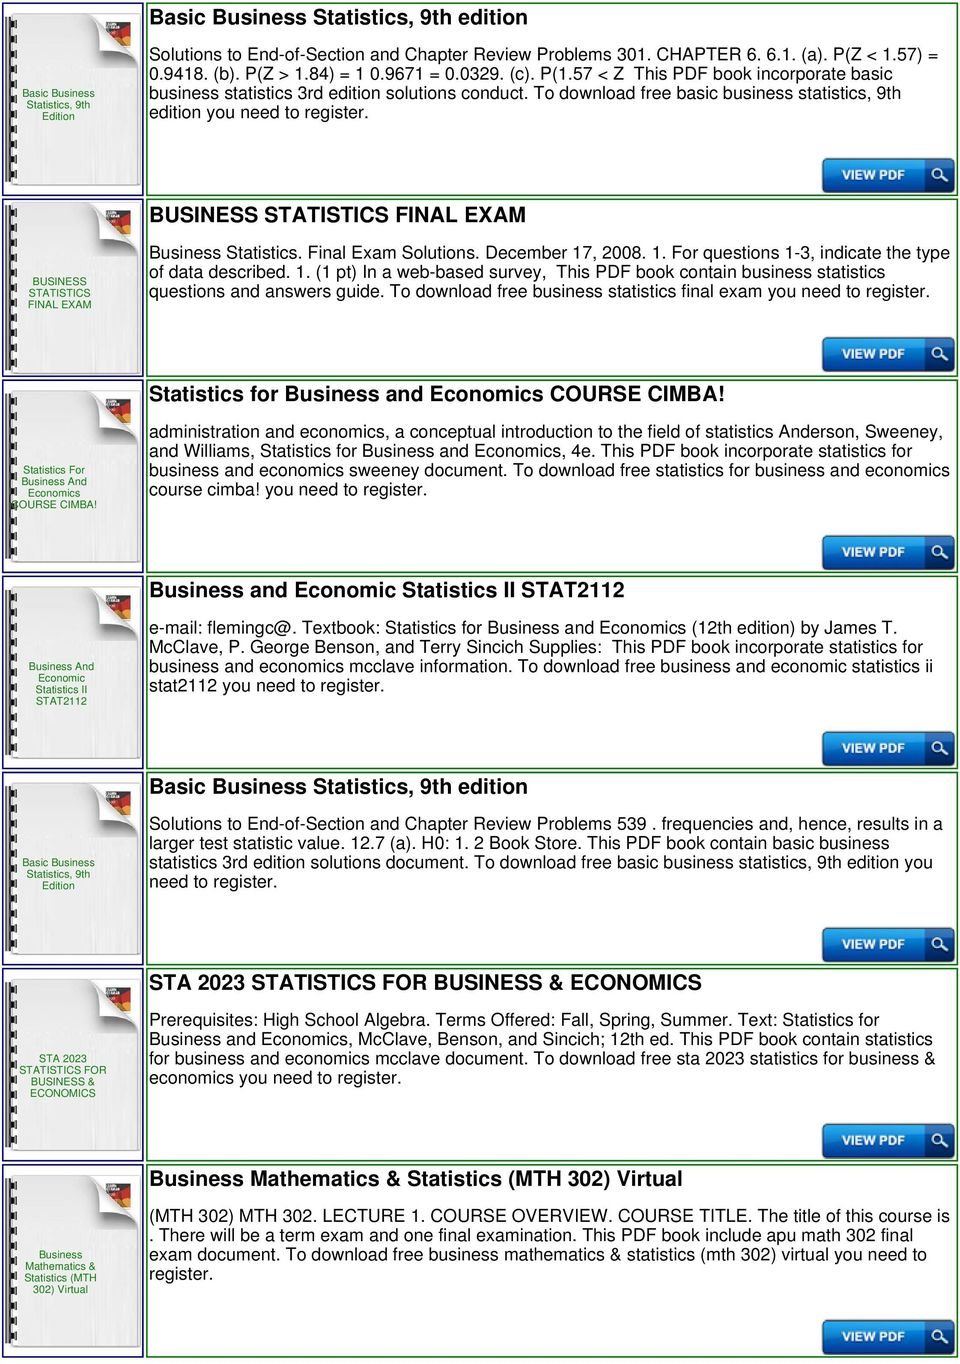 Final Exam Solutions. December 17, 2008. 1. For questions 1-3, indicate the type of data described. 1. (1 pt) In a web-based survey, This PDF book contain business statistics questions and answers guide.